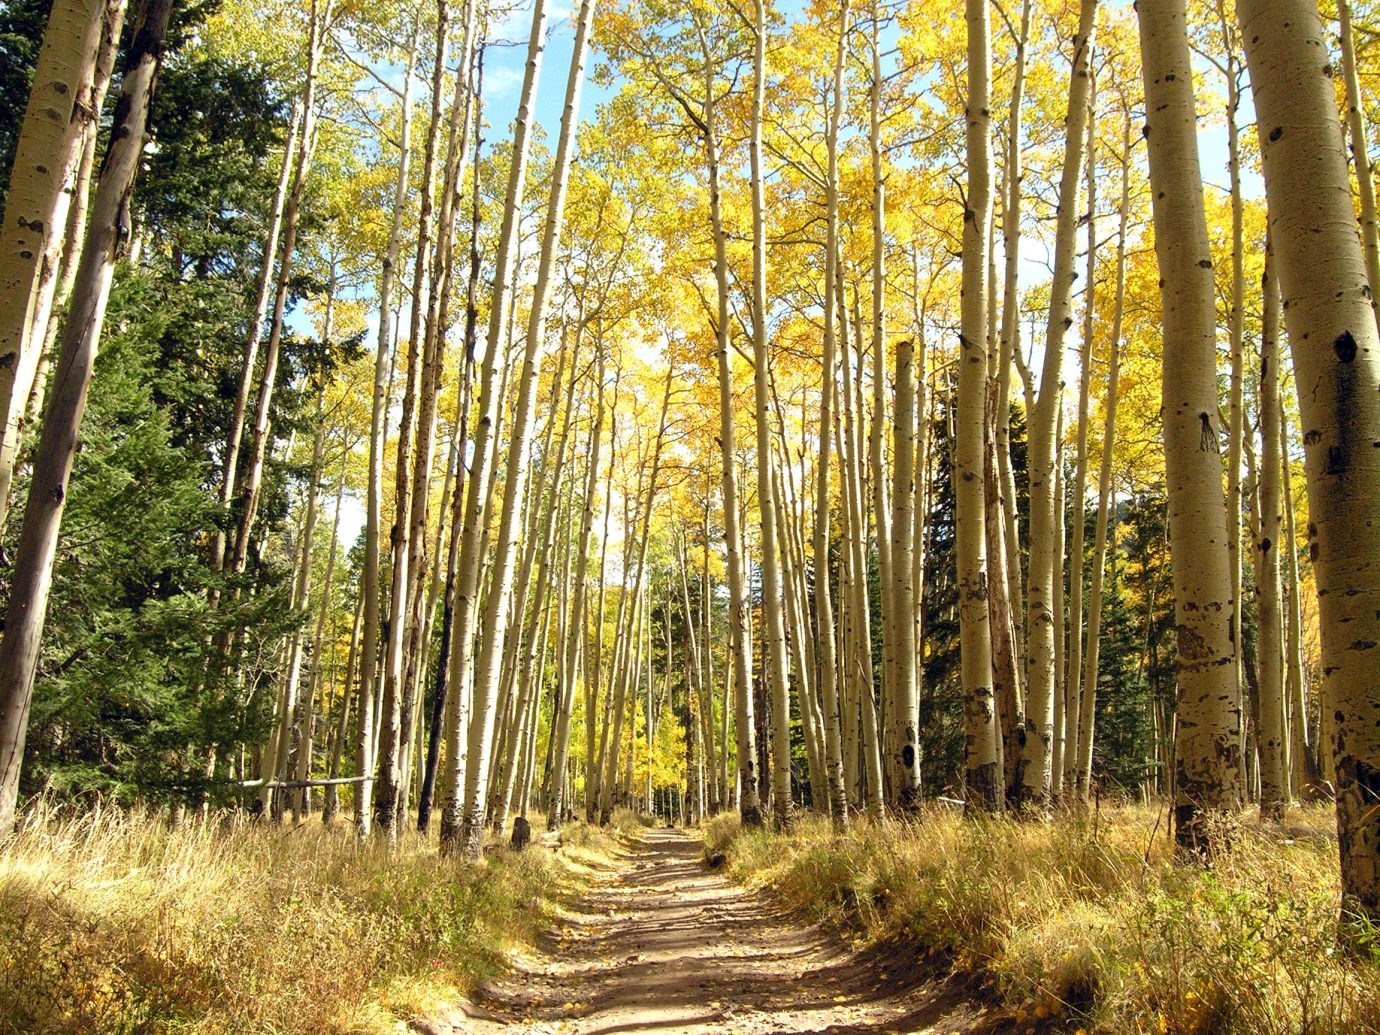 Trip Ideas tree outdoor habitat plant natural environment woodland ecosystem Forest grove season woody plant sunlight leaf autumn park poplar trail deciduous area wooded wood surrounded